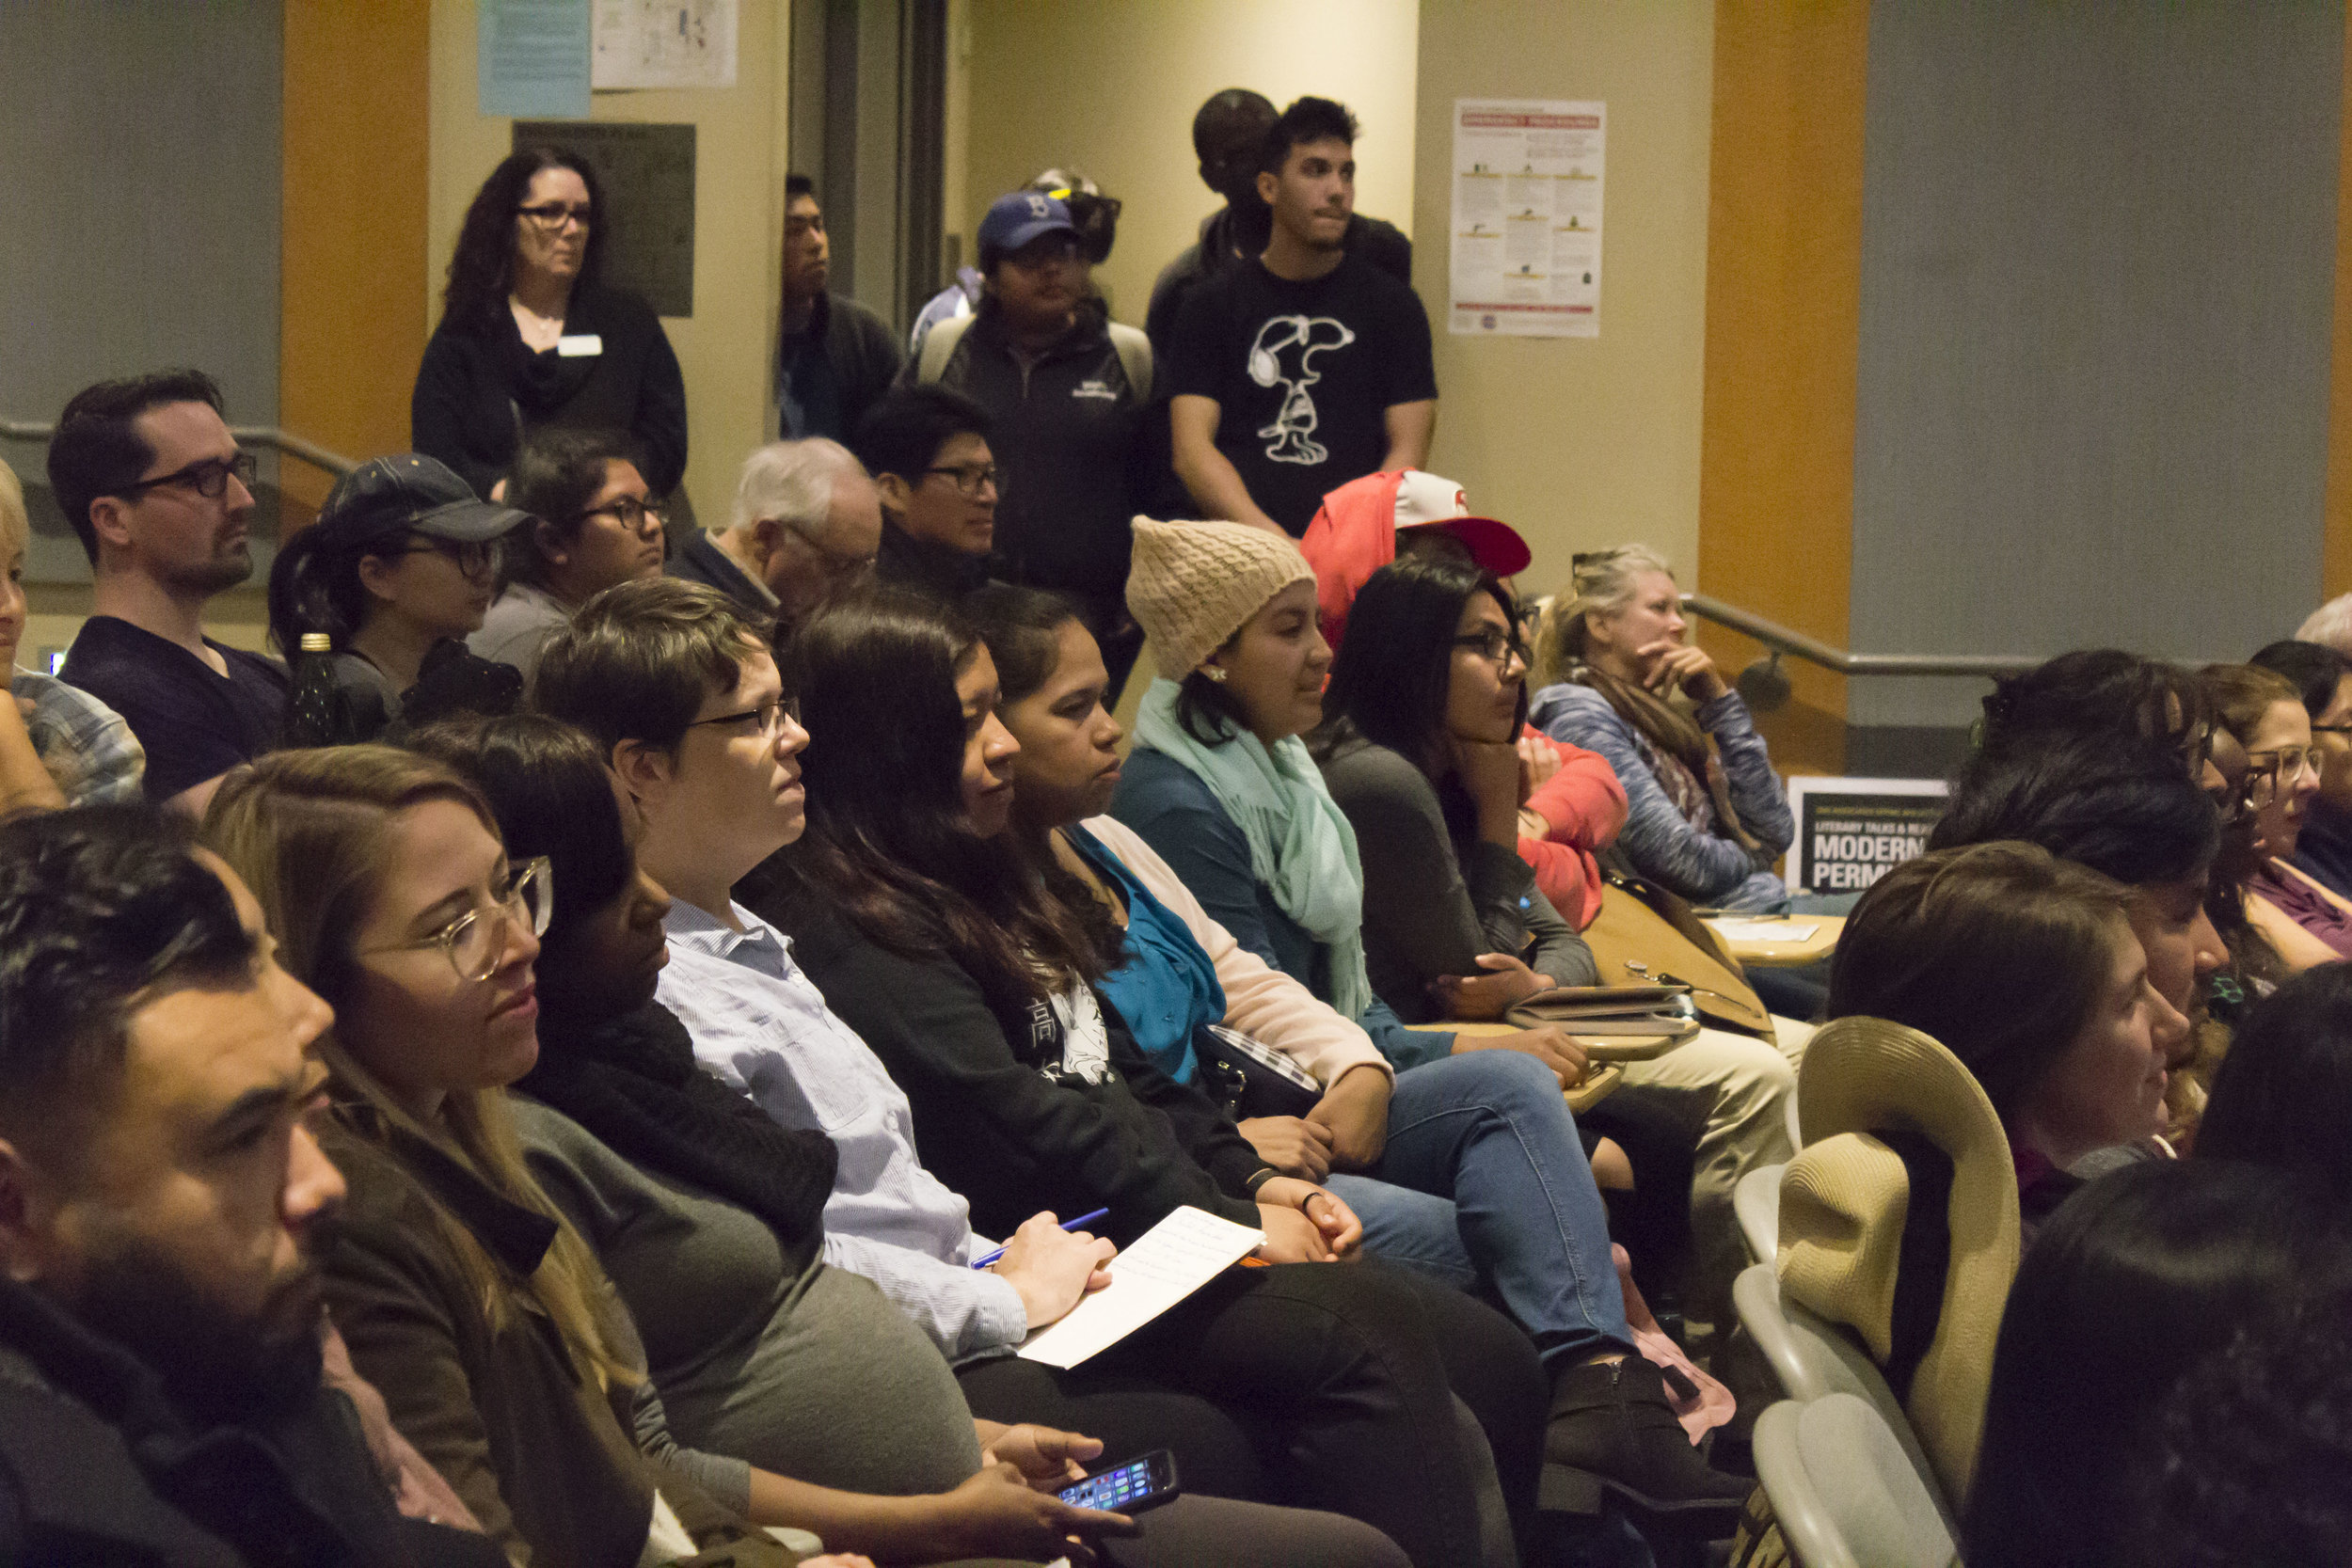 Jenny Lorenzo, the Award Winning YouTube star, talked to the students about promoting Latinx Voices in Social Media, at Santa Monica College, in Santa Monica, California, on Tuesday, March 20, 2018.  The room HSS165 and its 120 seats were full, about 15 students had to wait in the hallway, by the door. (Emeline Moquillon/Corsair Photo)